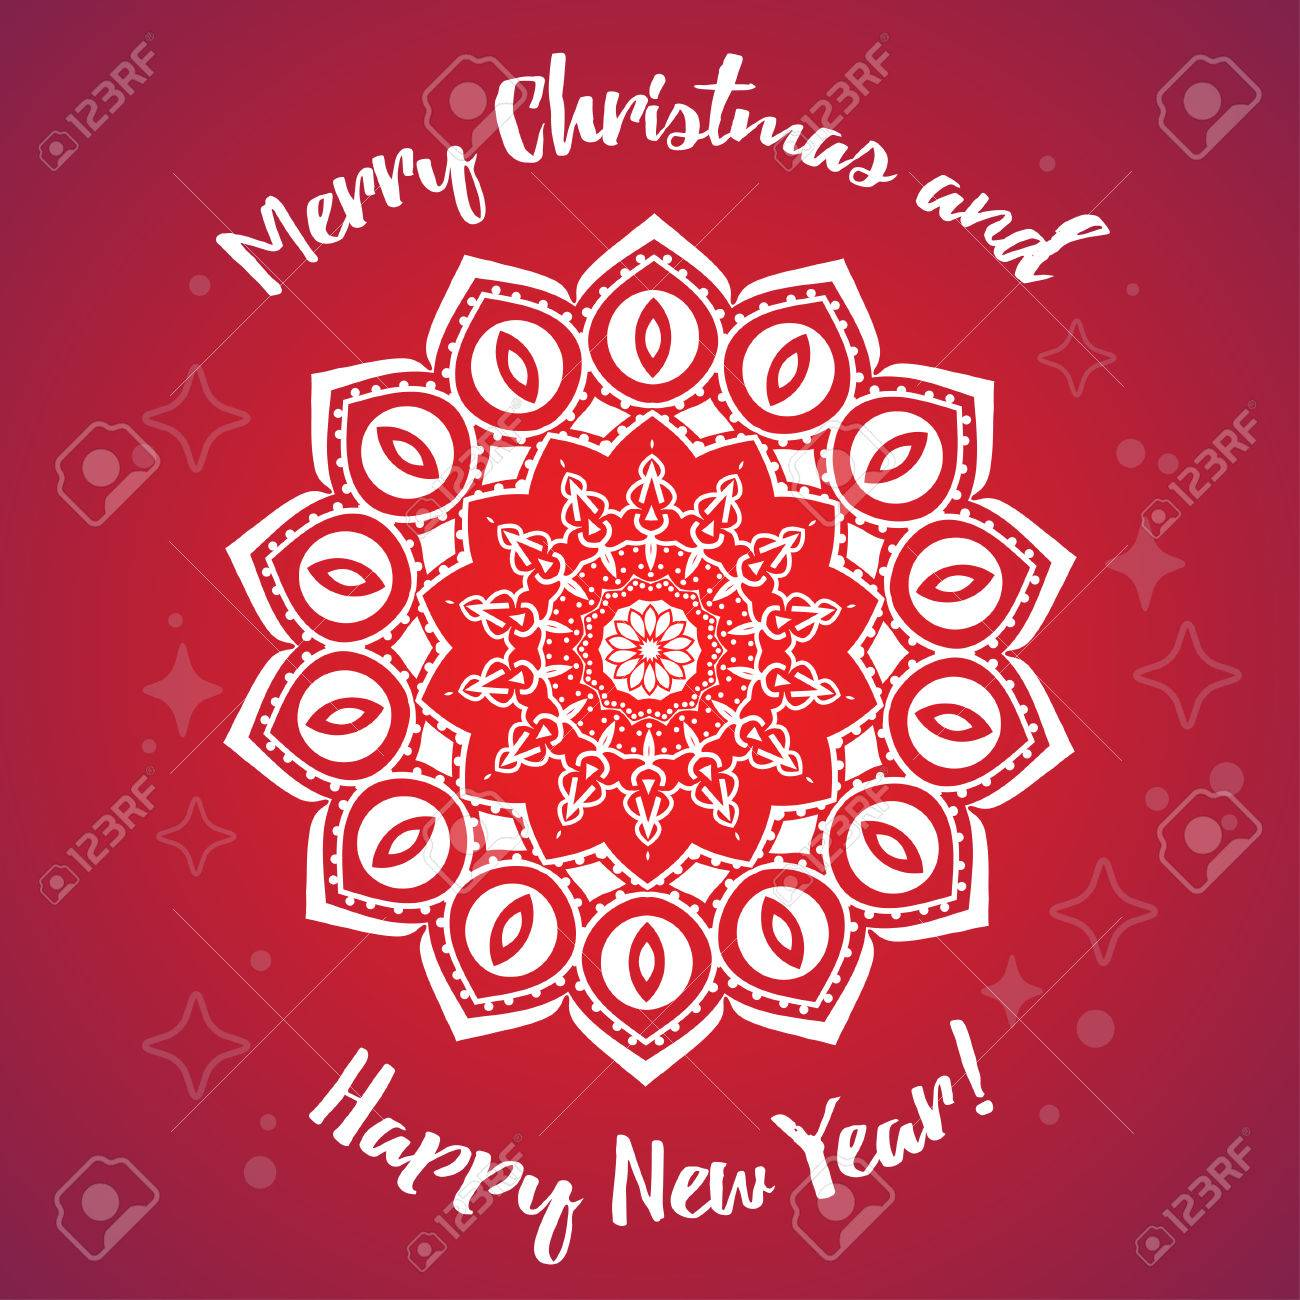 greeting card happy new year and merry christmas mandala snowflake arabic and indian style